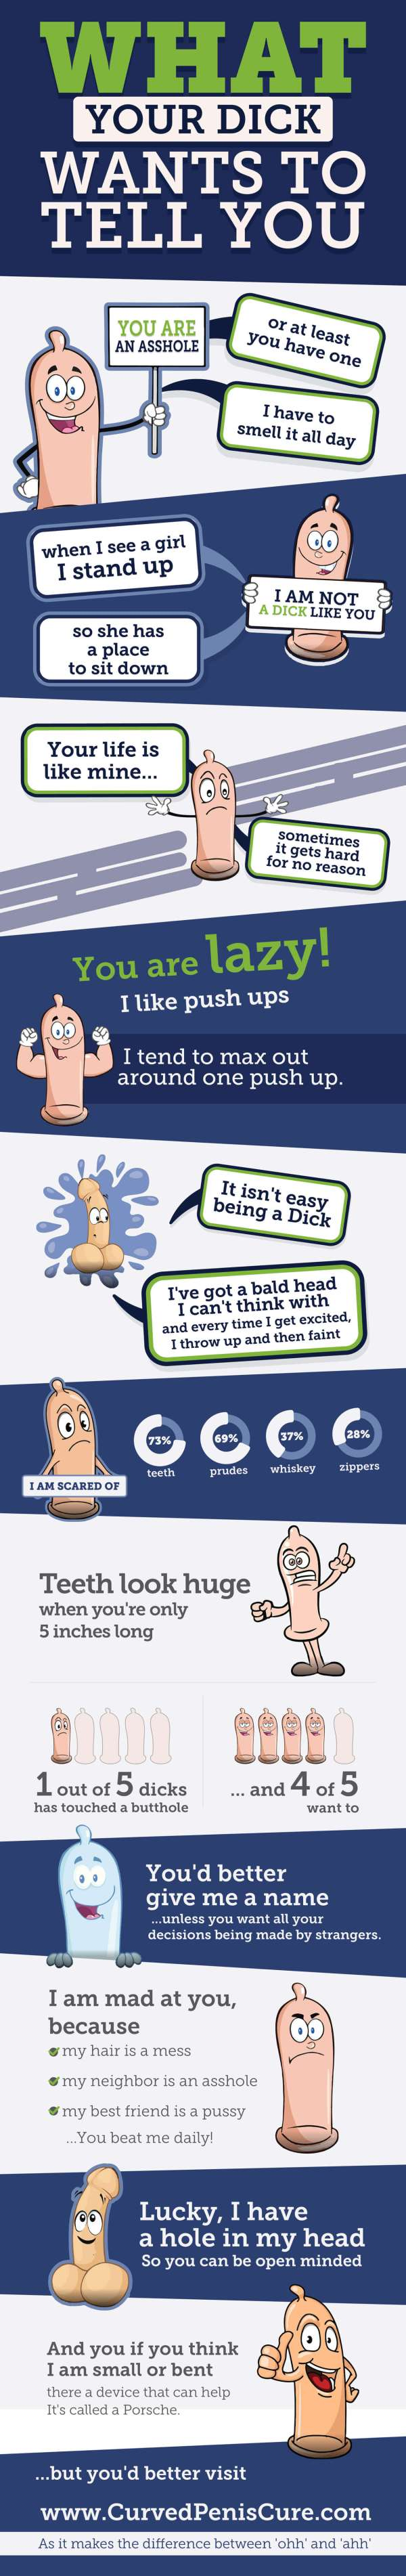 small-dick-jokes-infographic